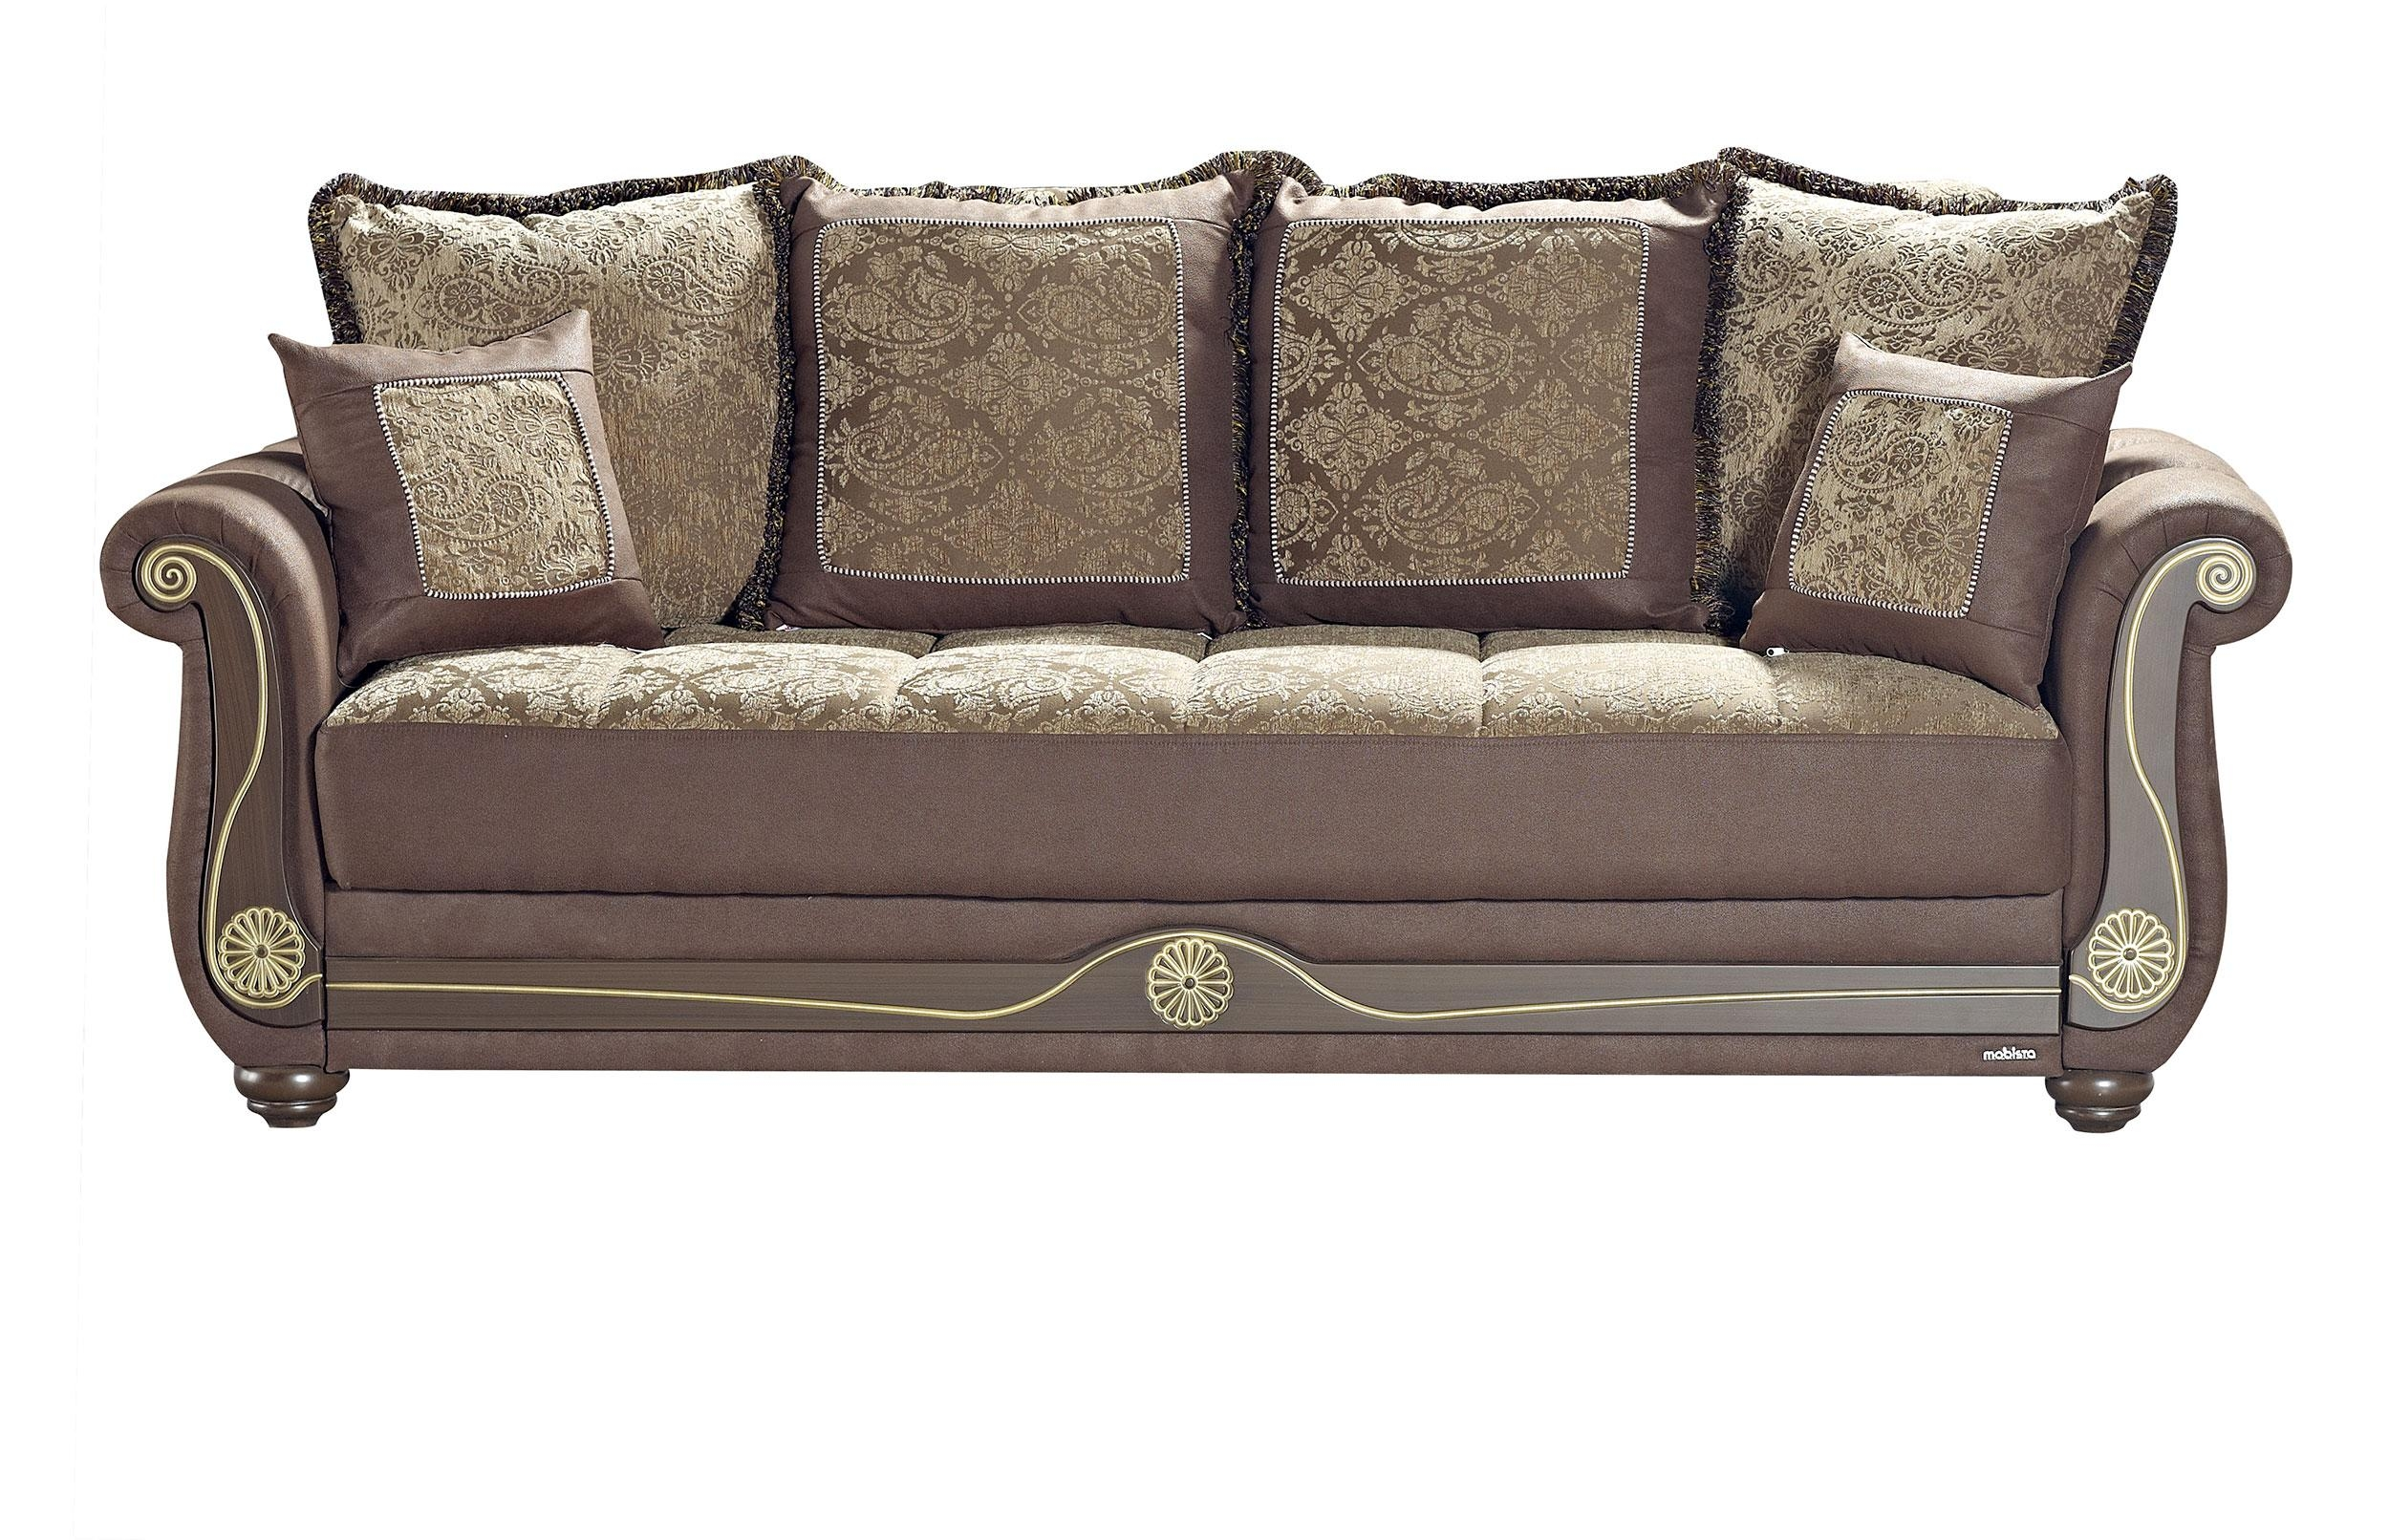 American Style Crown Brown Sofa Bedmobista In American Sofa Beds (View 15 of 22)